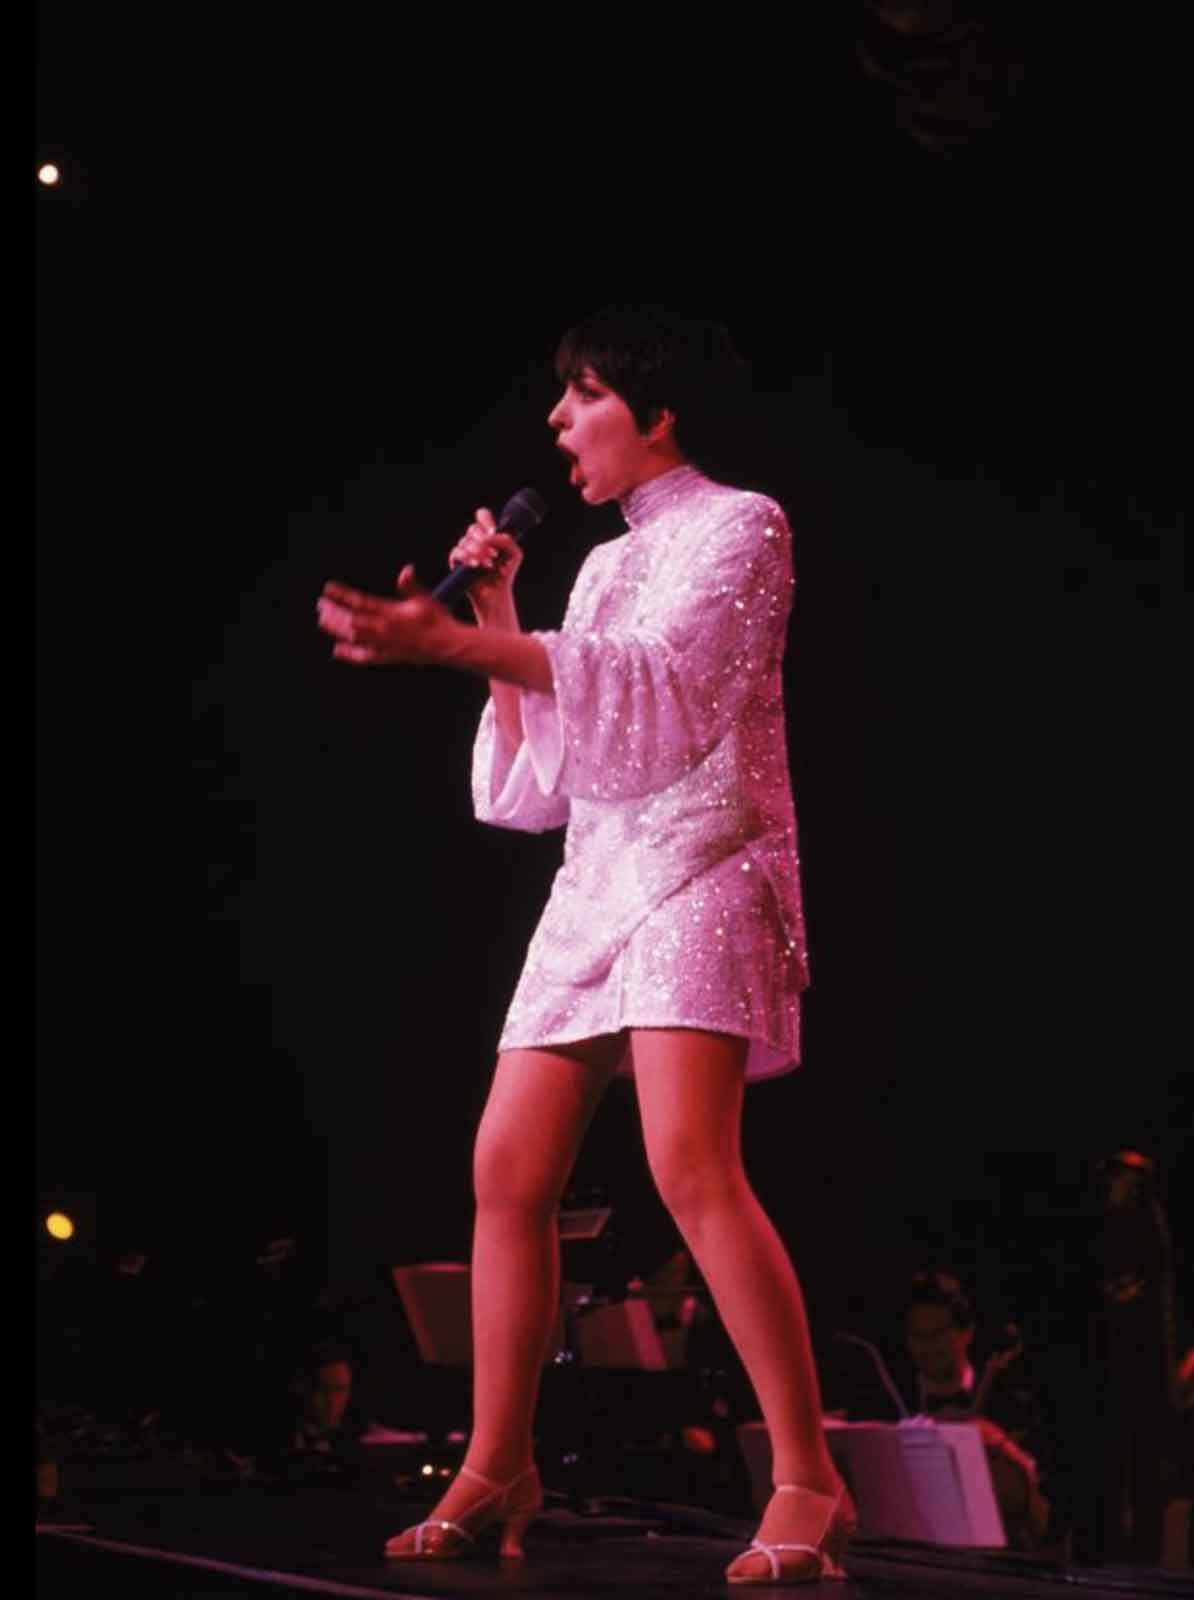 Liza in a solo moment, dressed in a white sequin dress, standing in second position and belting with a microphone and slight bend of the knees.